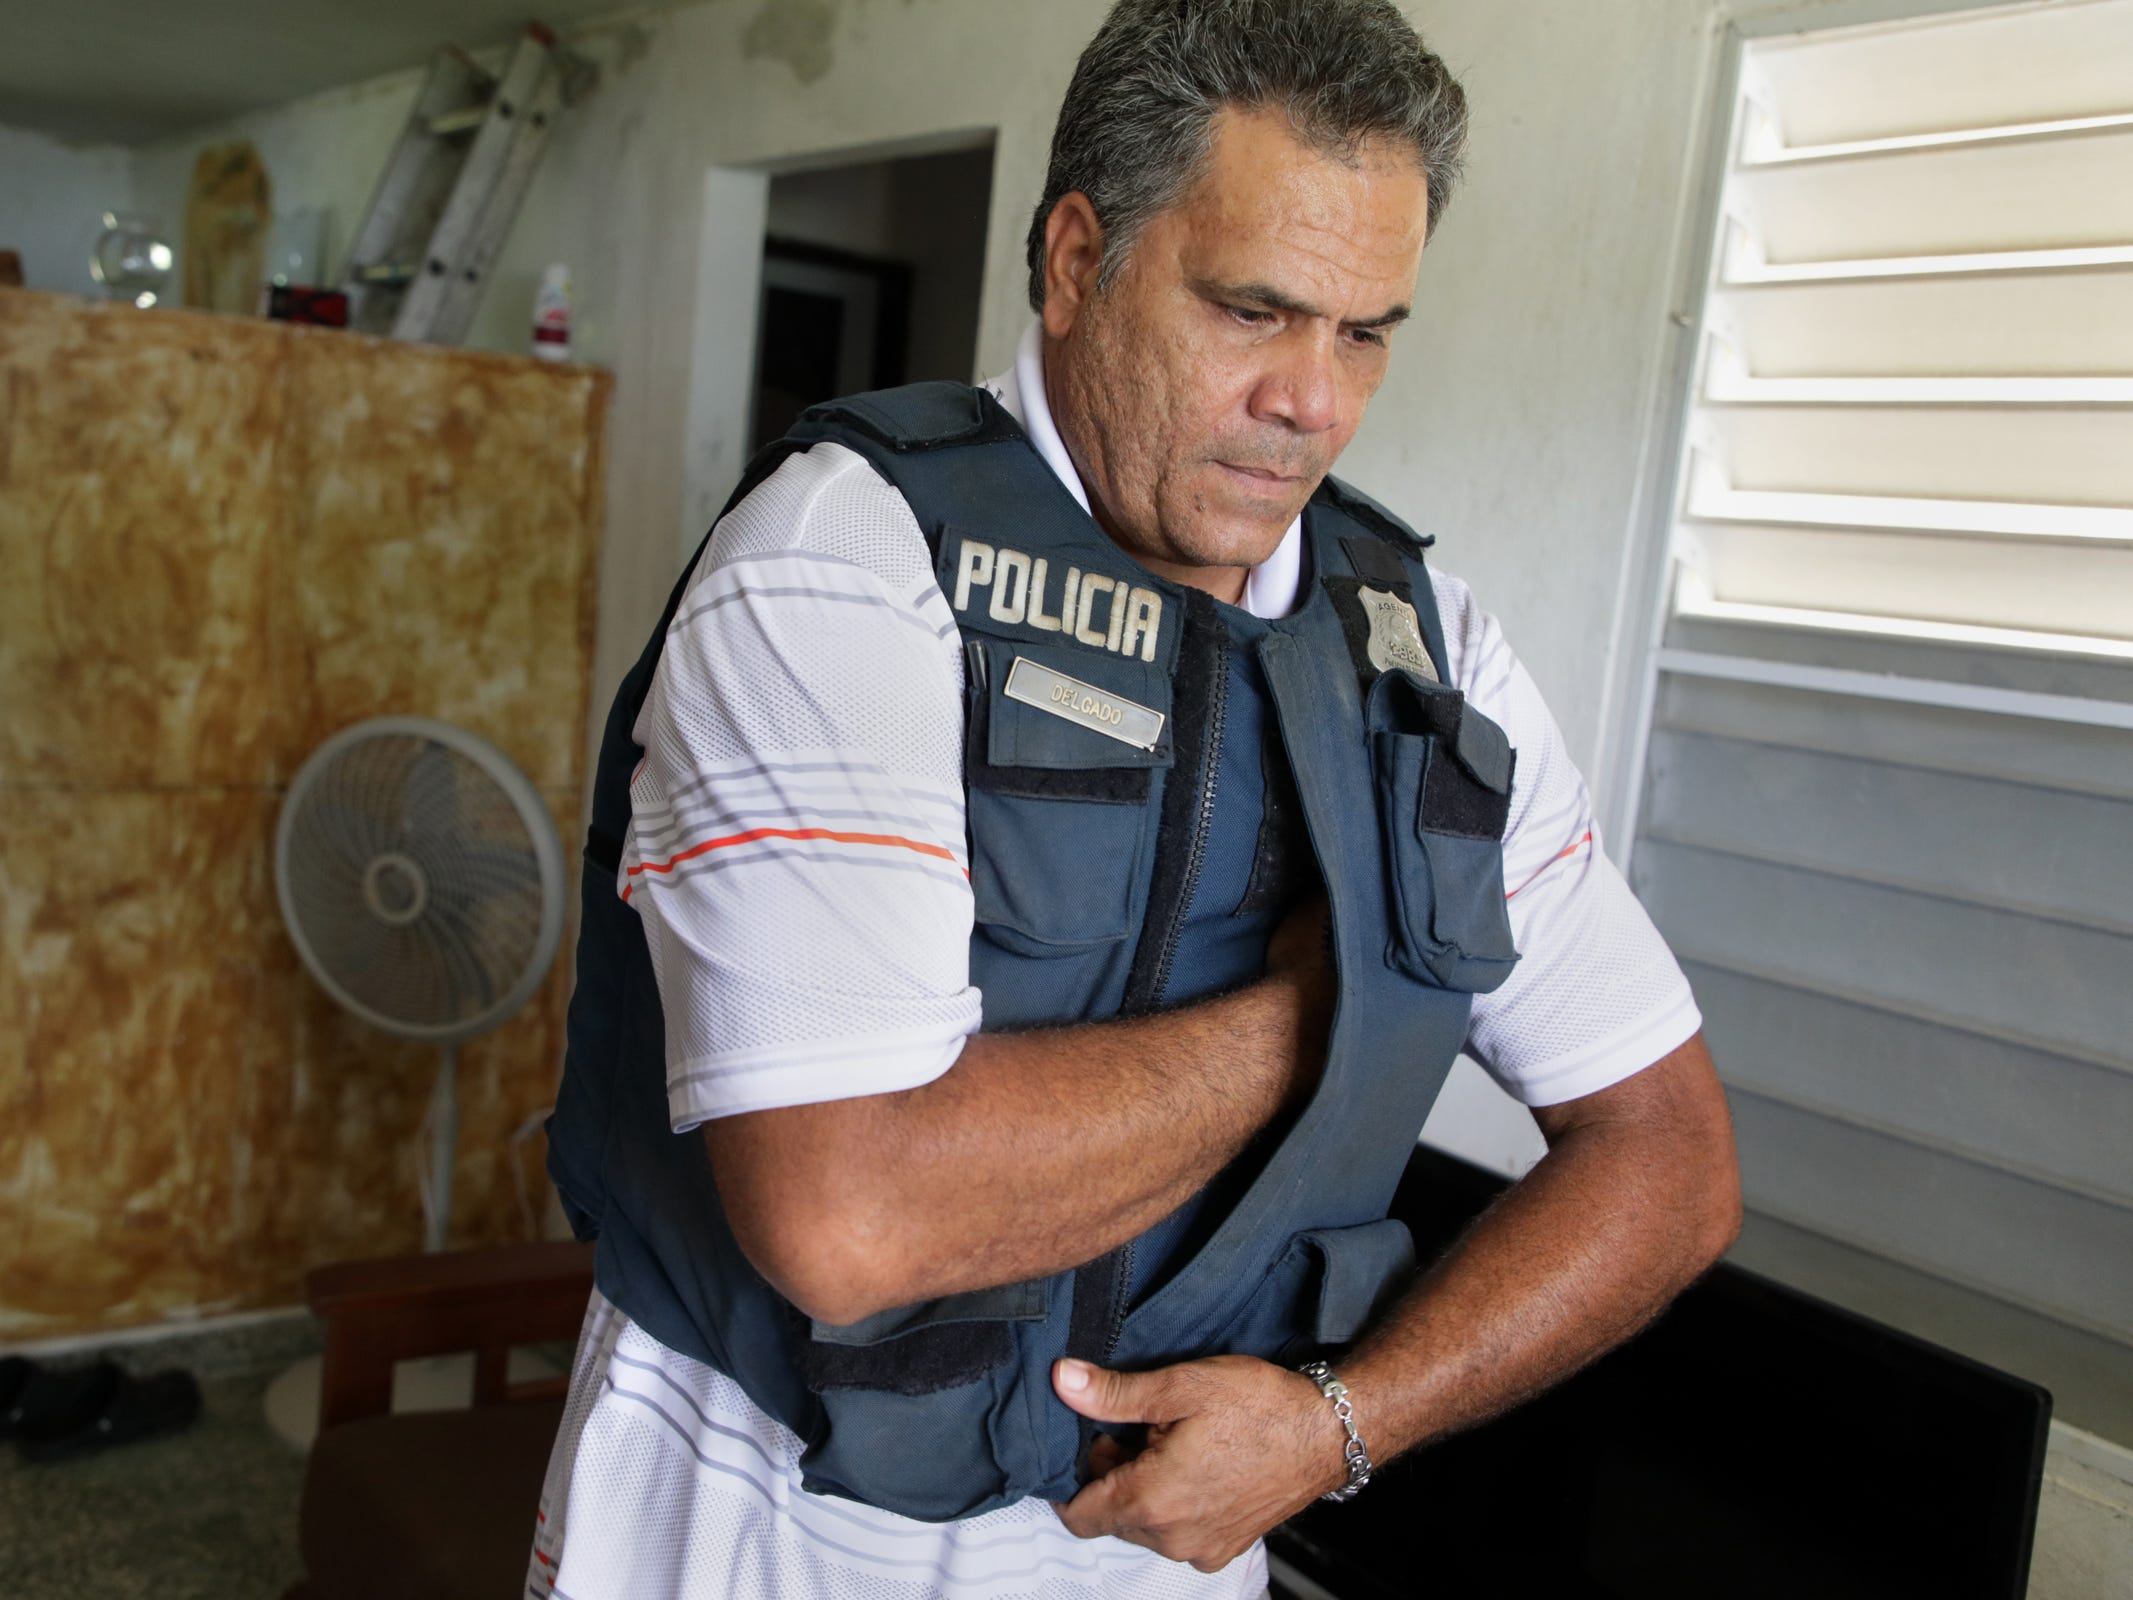 Eleobadis Delgado, 49 tries on his body armor at his home in Maunabo, Puerto Rico. The body armor protects his 6-foot-2-inch frame. But the 19-year policeÊveteran says nothing can protect him from the nightmares of failed rescues and destroyed homes he has seen since Hurricane Maria last year devastated his island